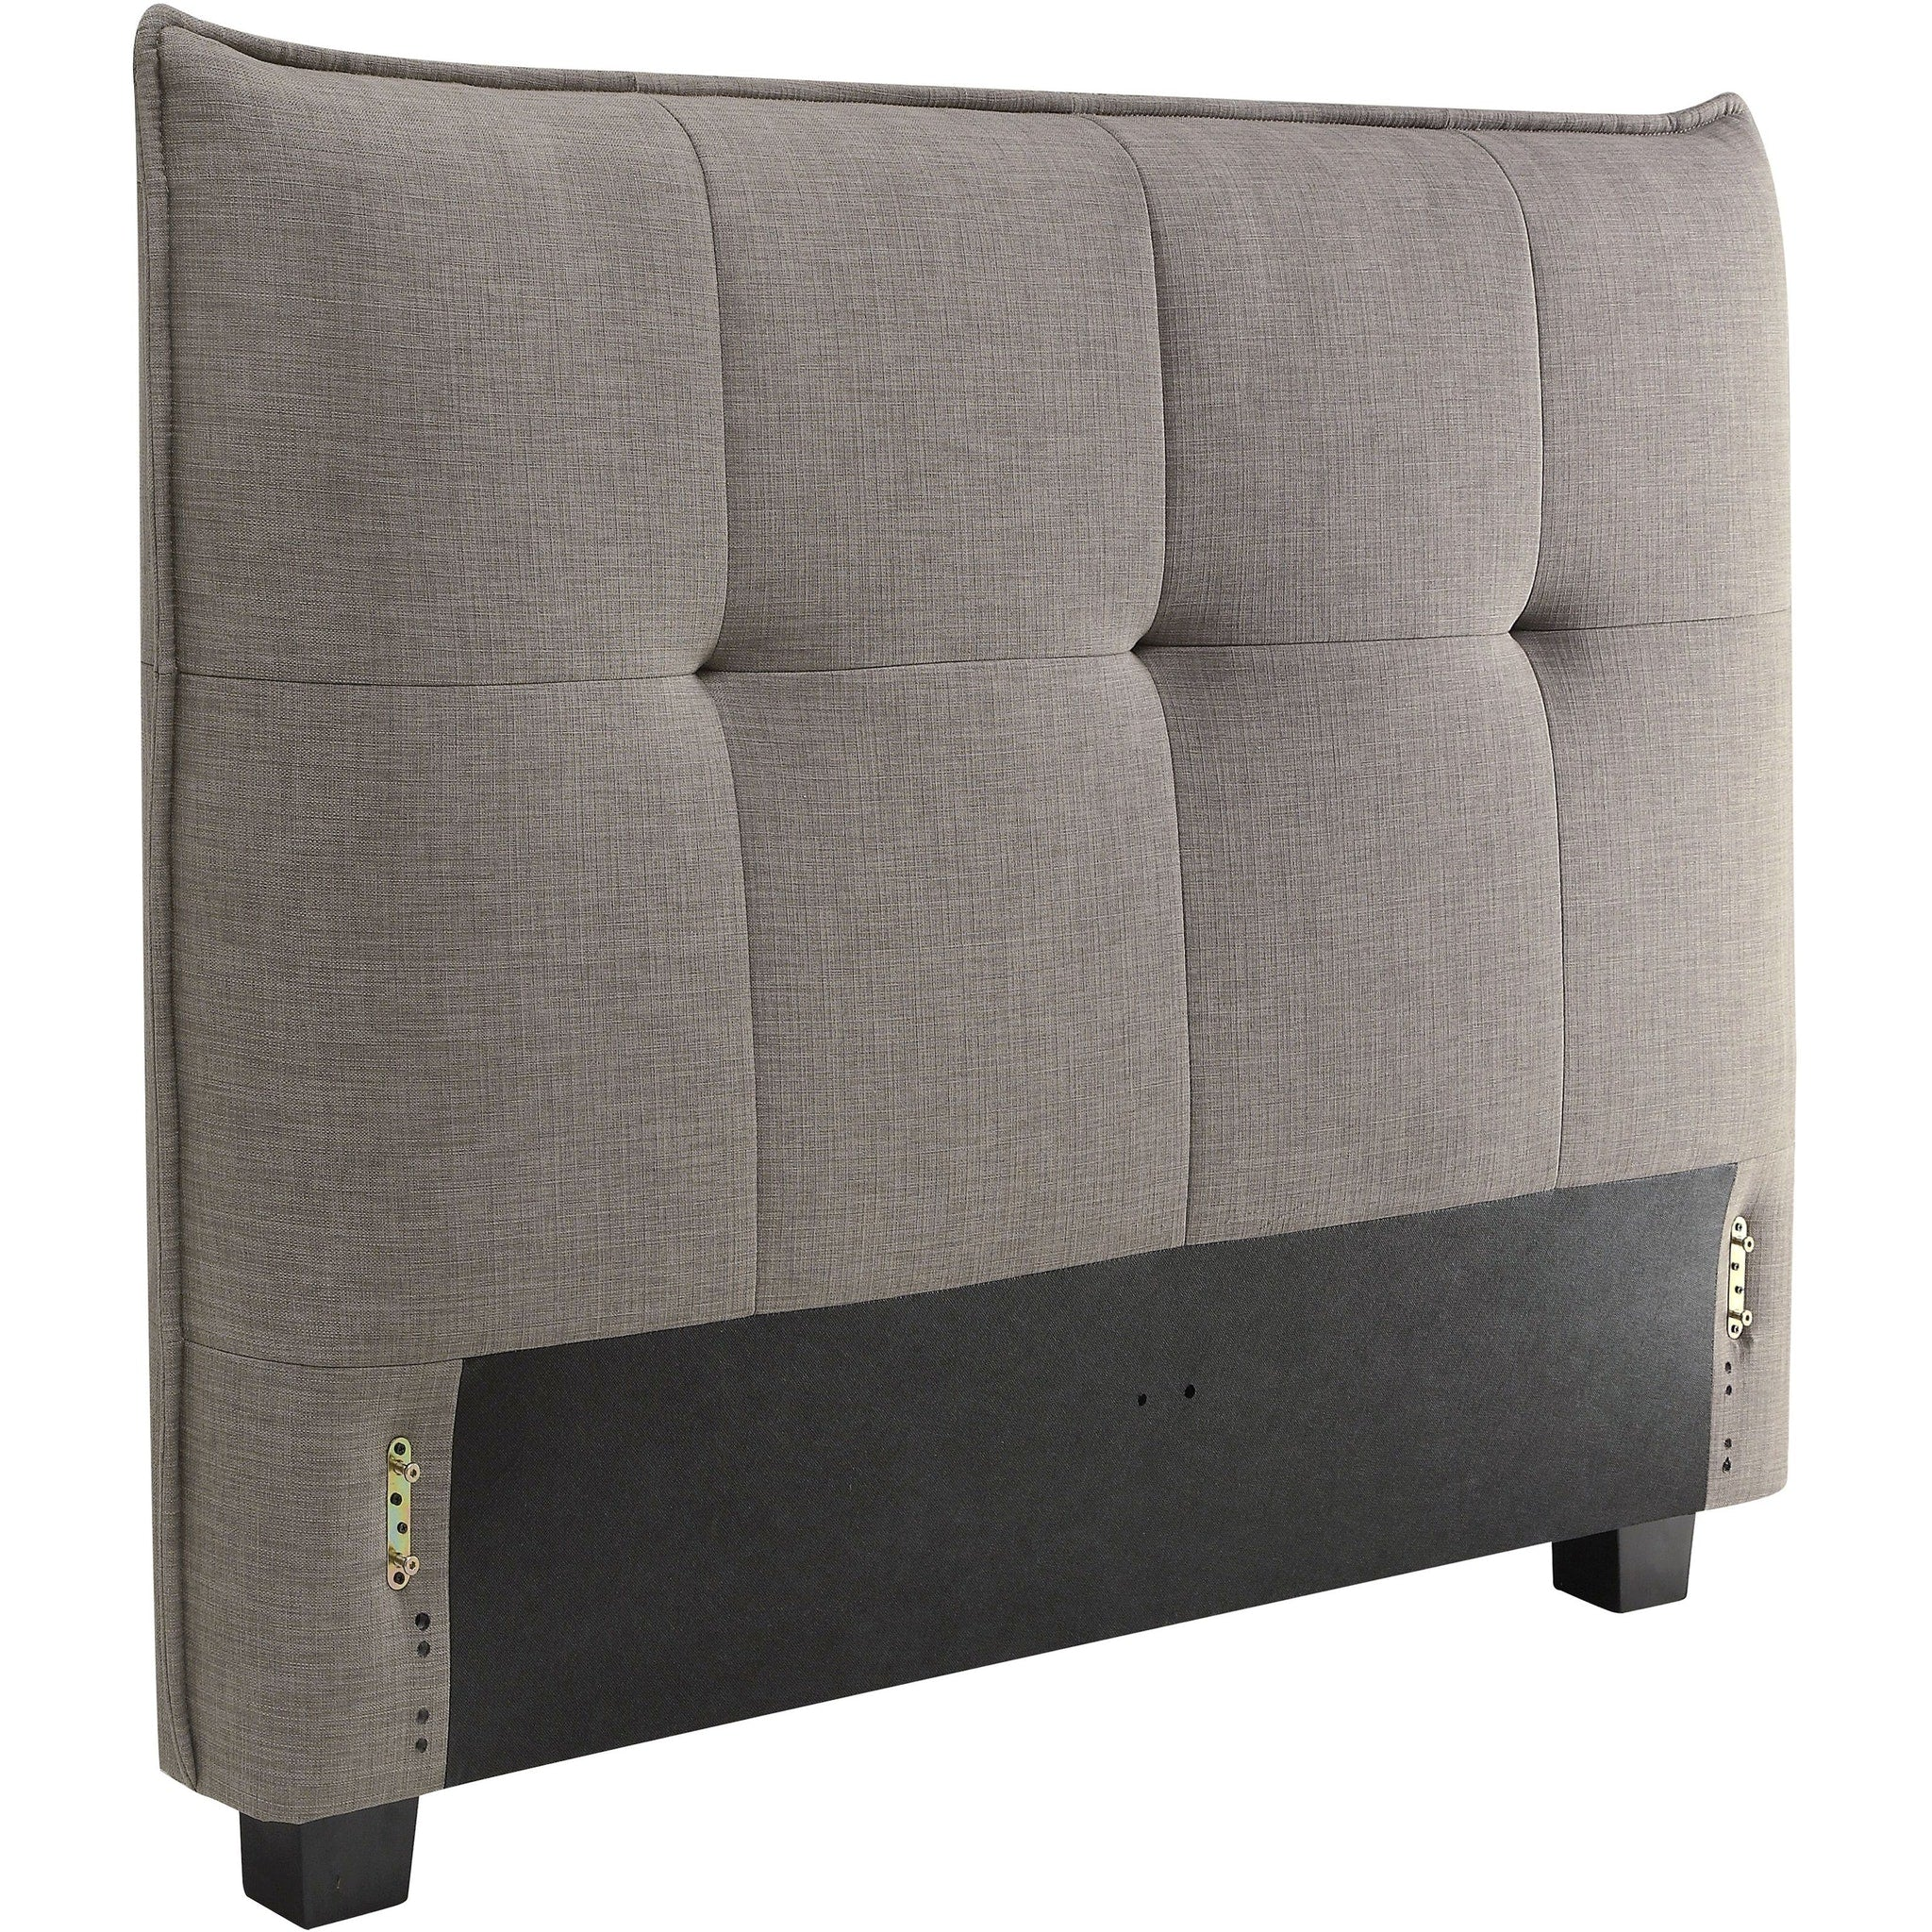 Adona California King-Size Upholstered Headboard in Dolphin Linen